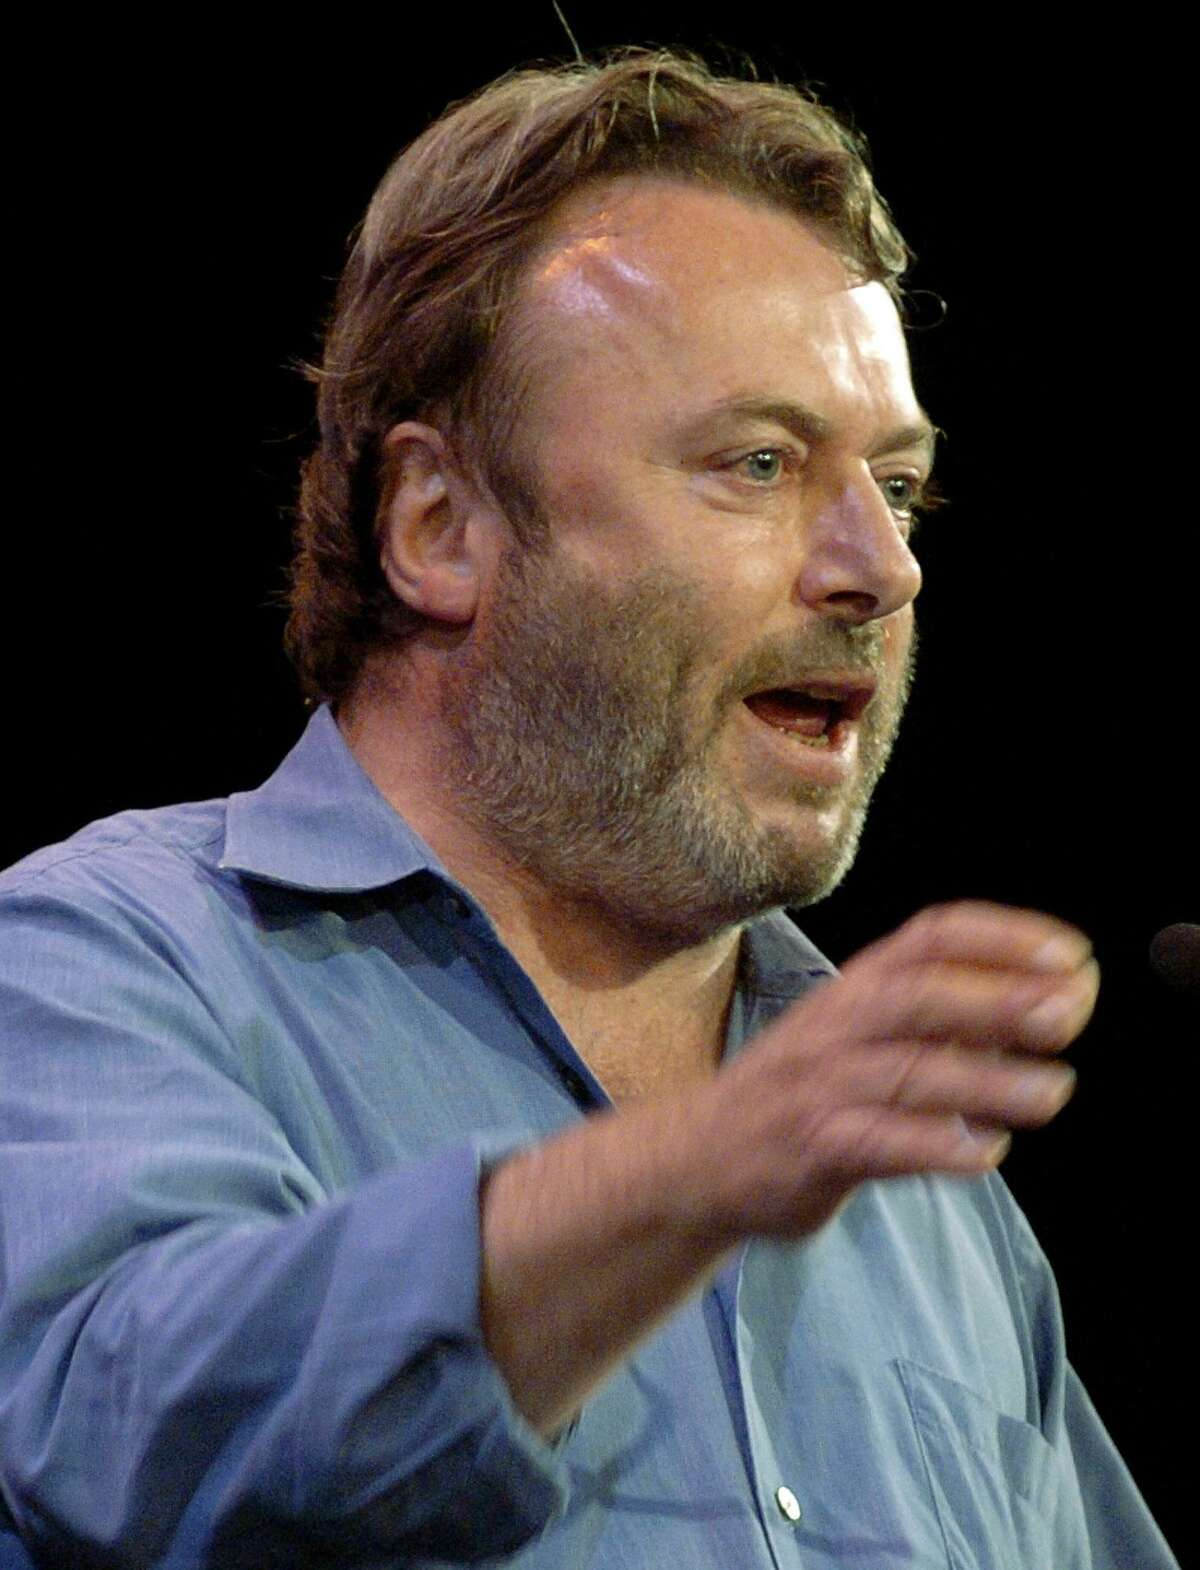 Essayist Christopher Hitchens speaks during a debate on Iraq and the foreign policies of the United States and Britain, in this Sept. 14, 2005 file photo taken in New York.Hitchens died on Thursday Dec. 15, 2011 at the age of 62 from complications of cancer of the esophagus. (AP Photo/Chad Rachman)